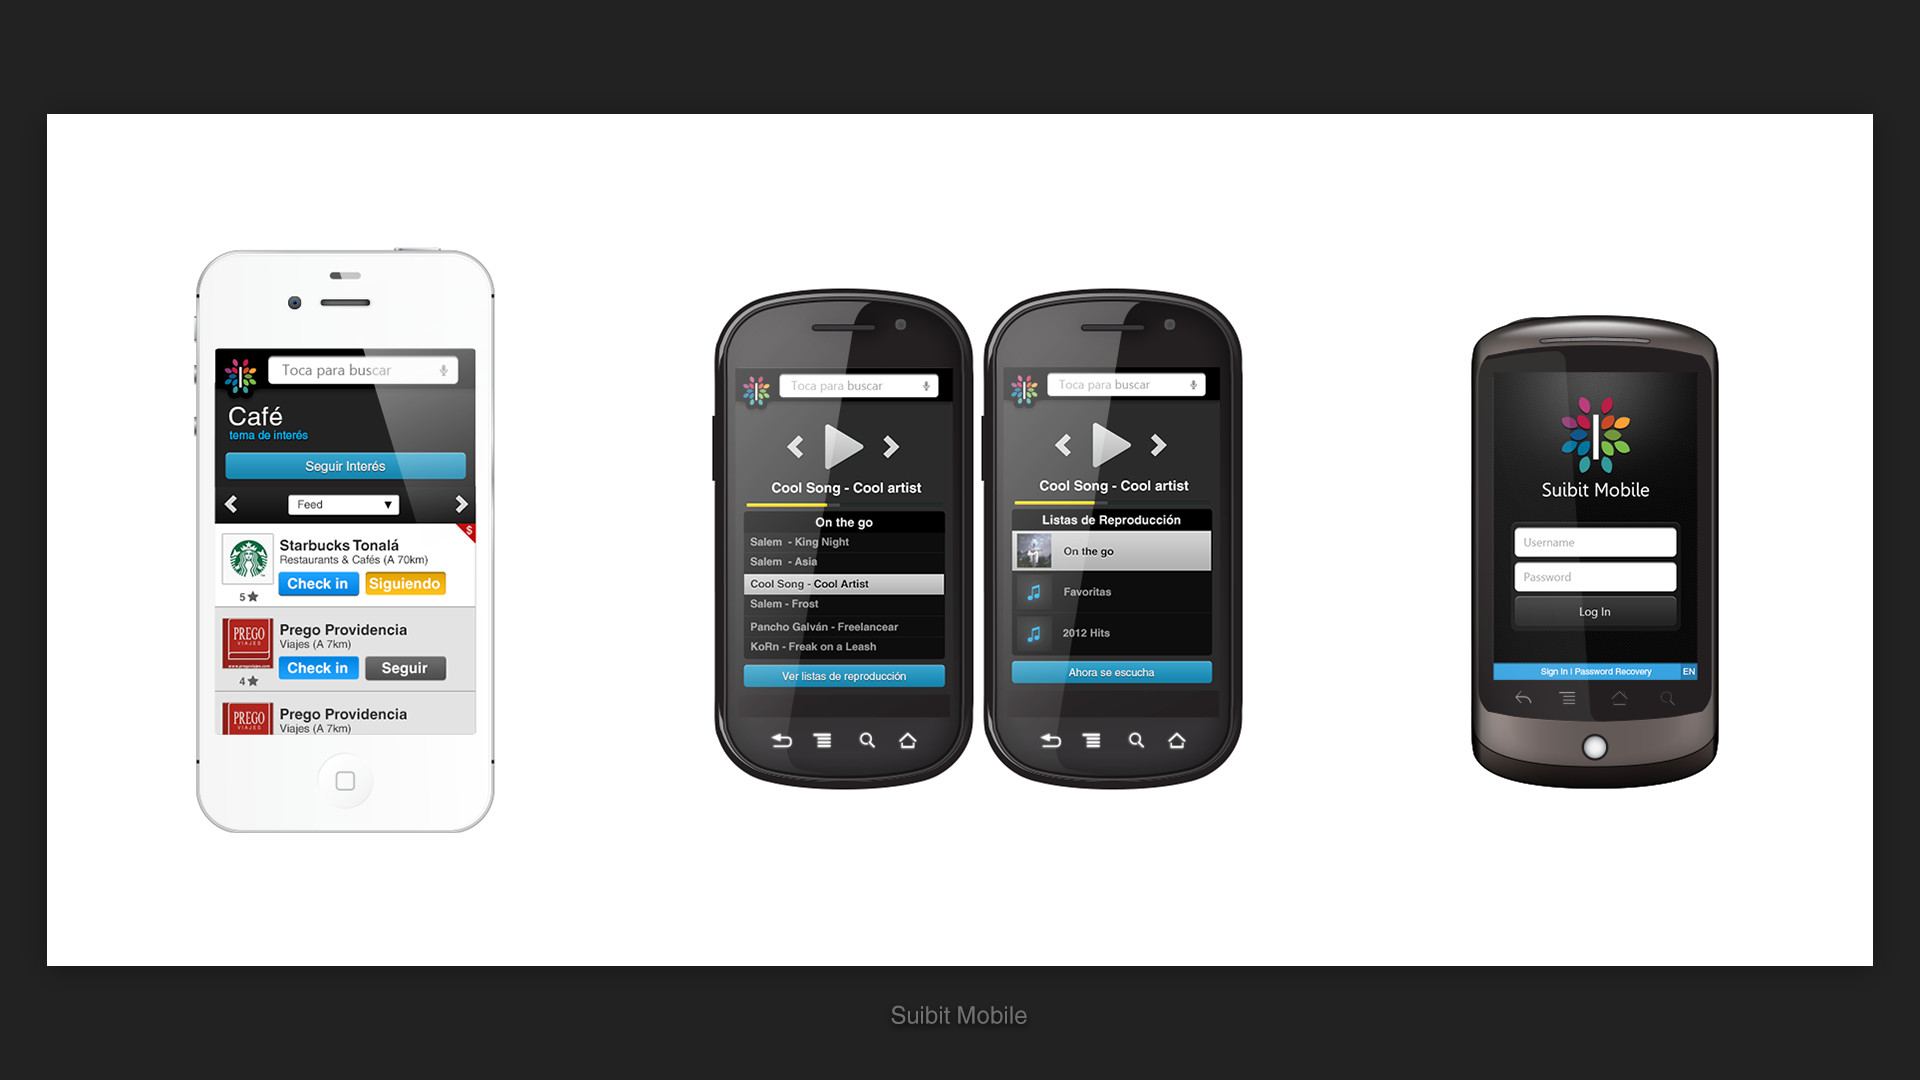 Some of the Suibit Mobile screens, a special design for mobiles.